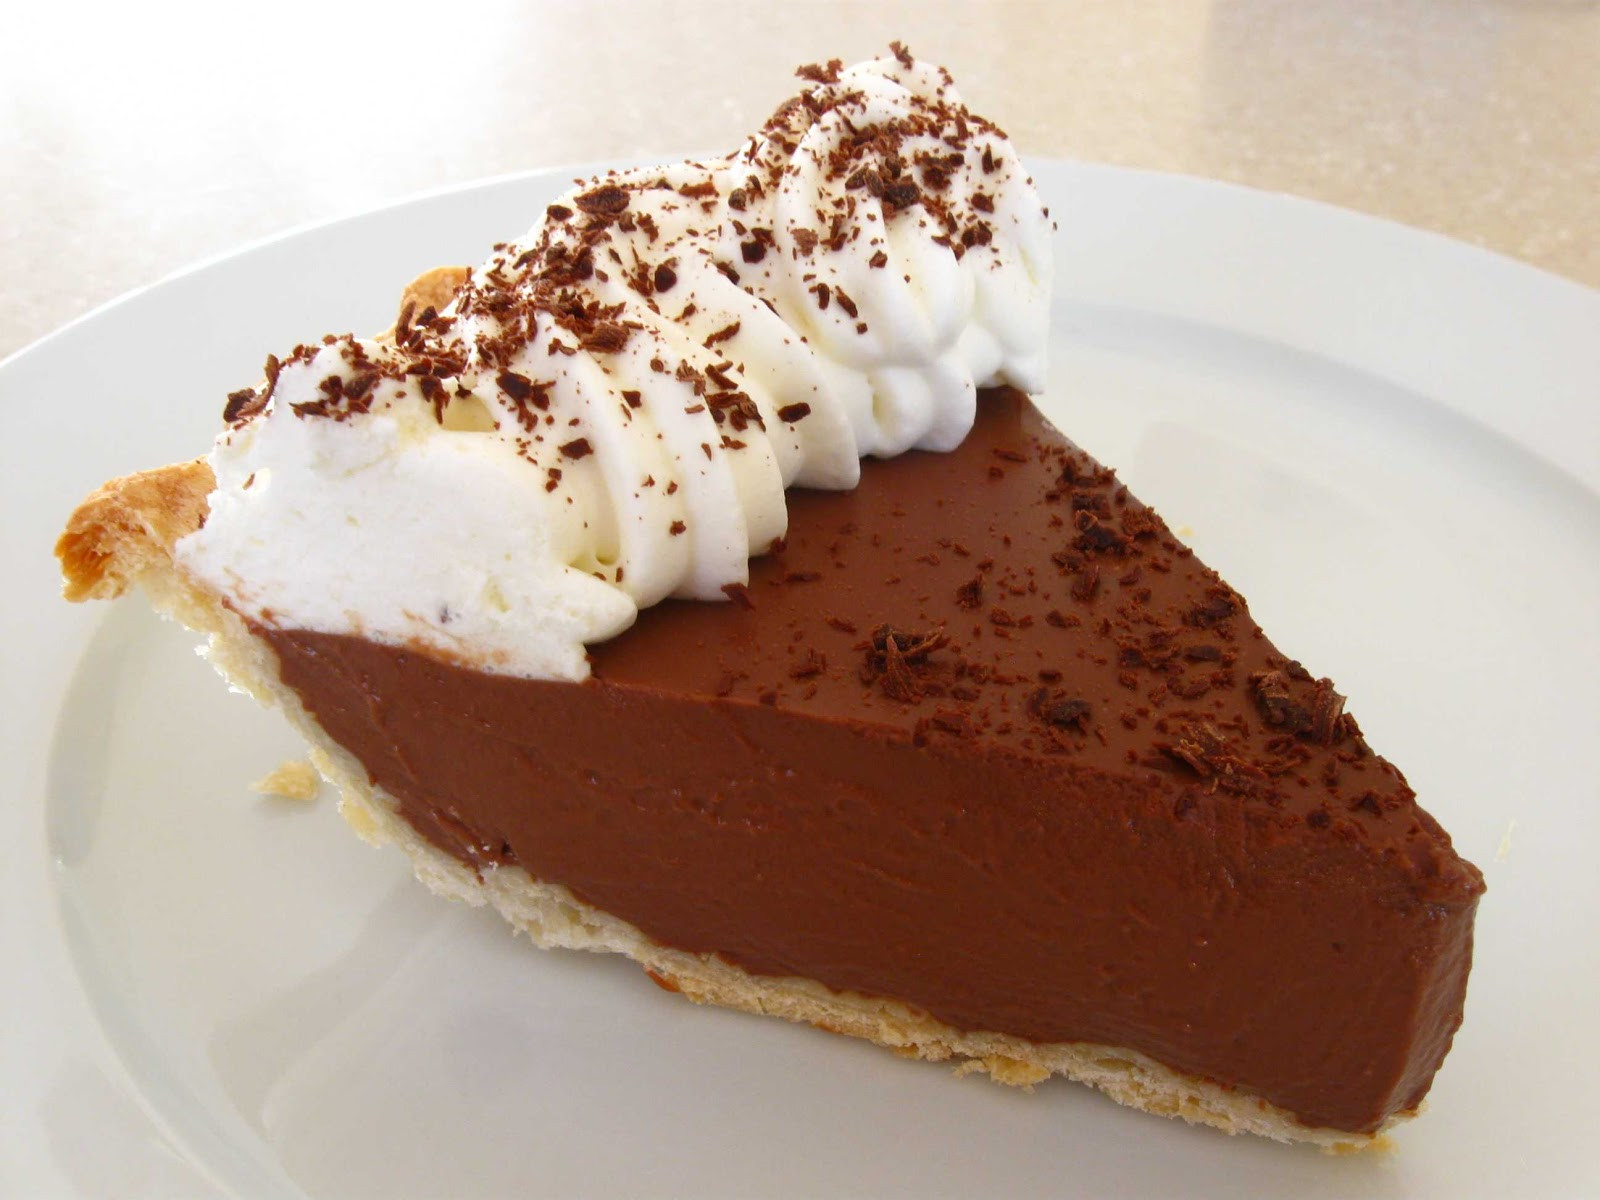 Chocolate Pie With Cocoa  Cooking From Scratch Chocolate Pie